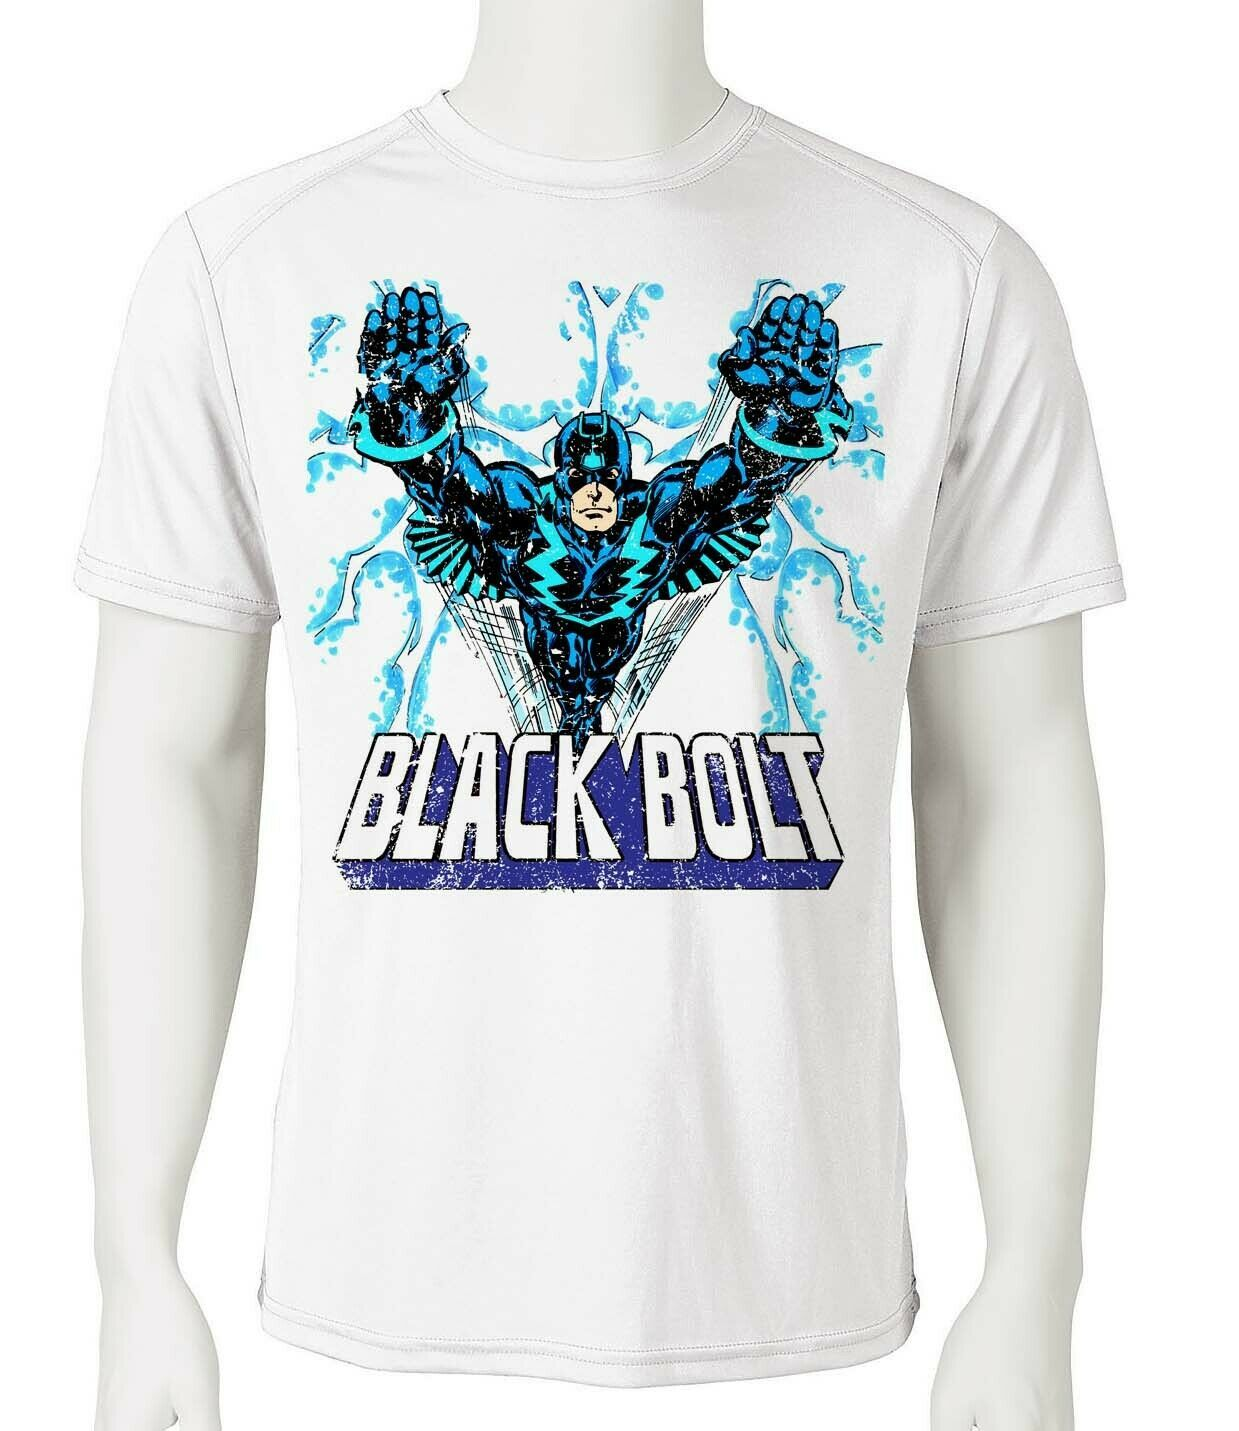 Black bolt dri fit graphic t shirt moisture wicking retro superhero spf tee 2